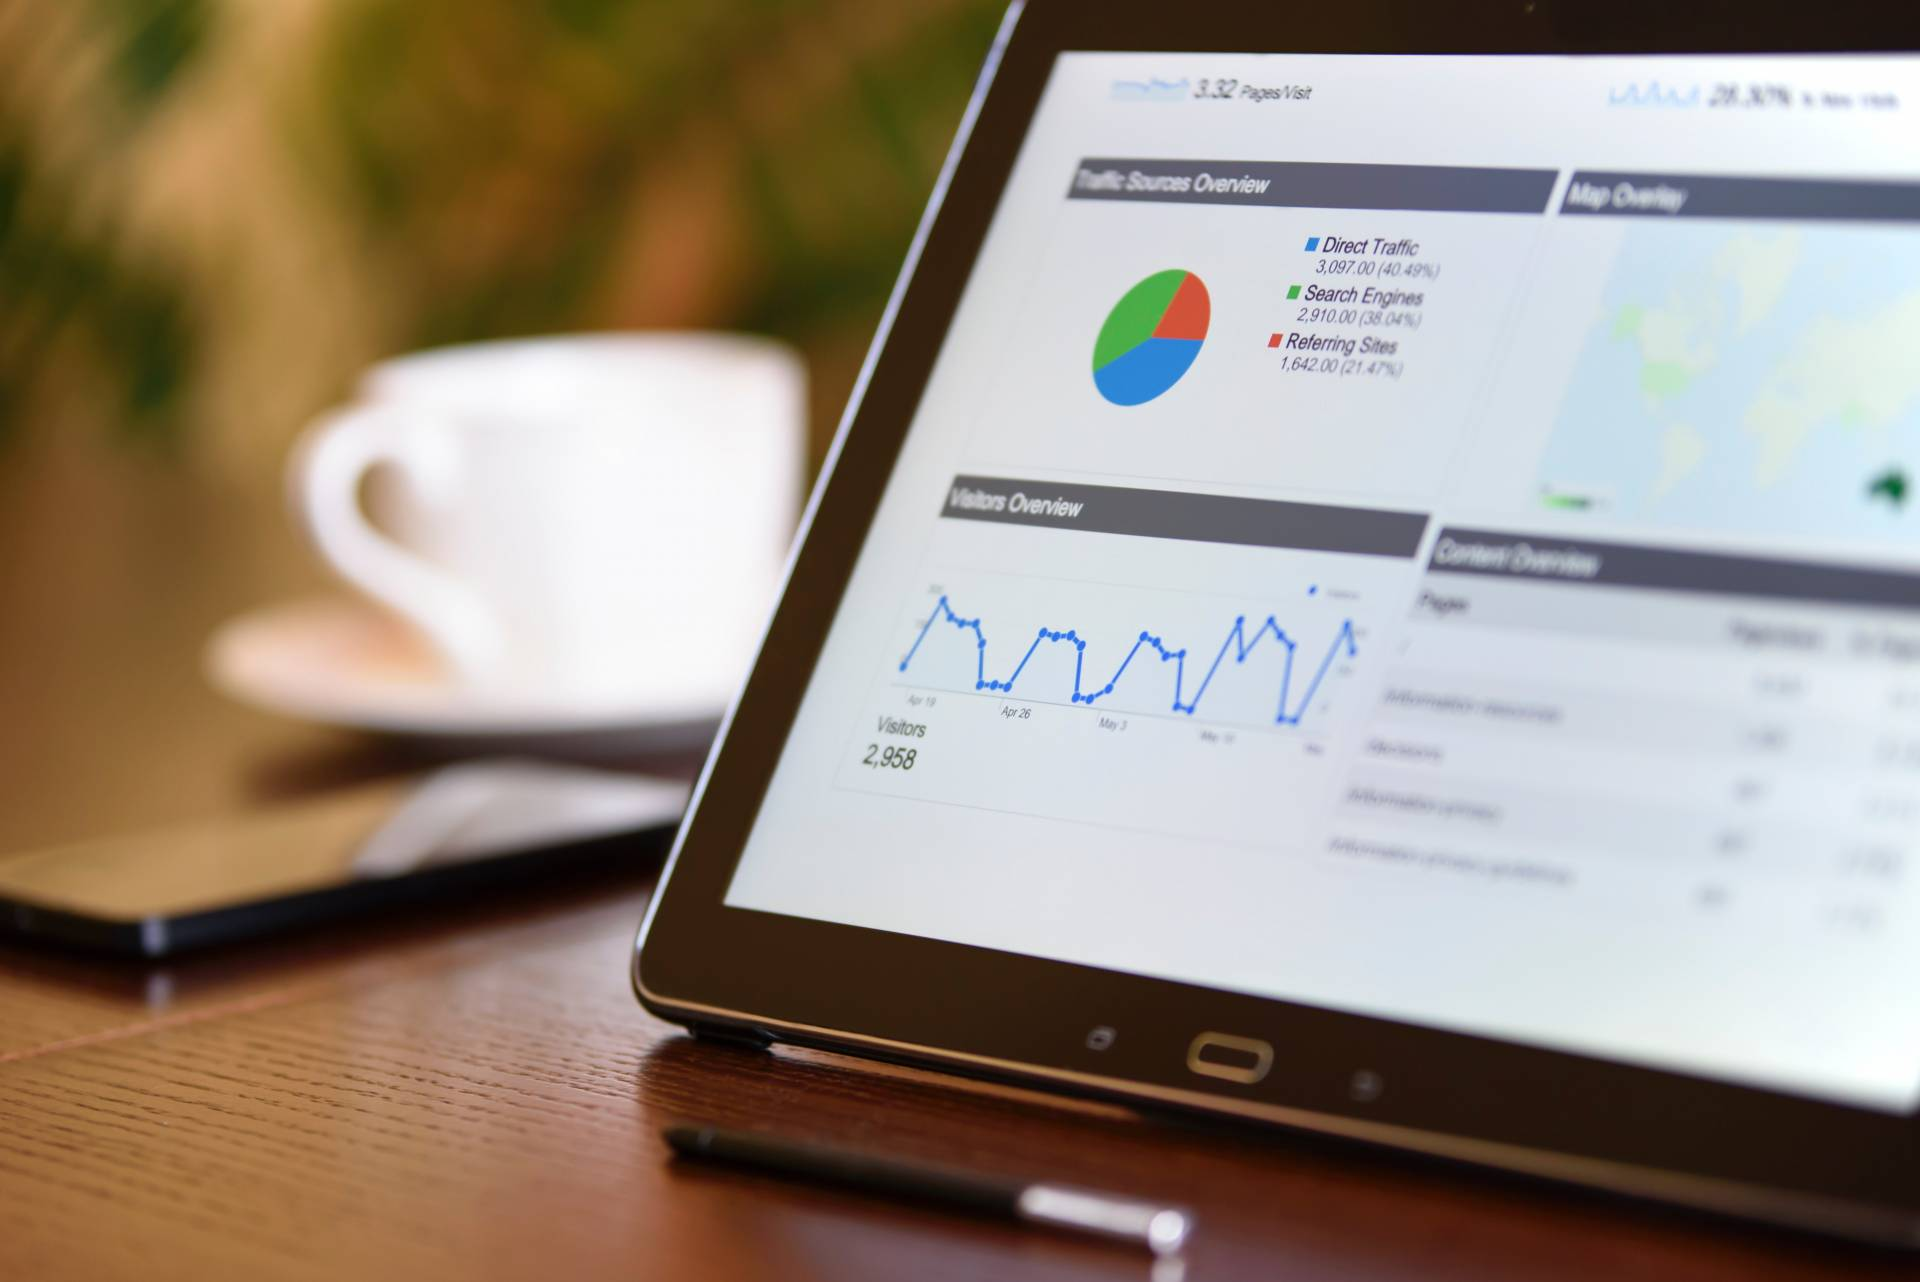 Bring More Visibility to Your Brand with the Latest Marketing Trends